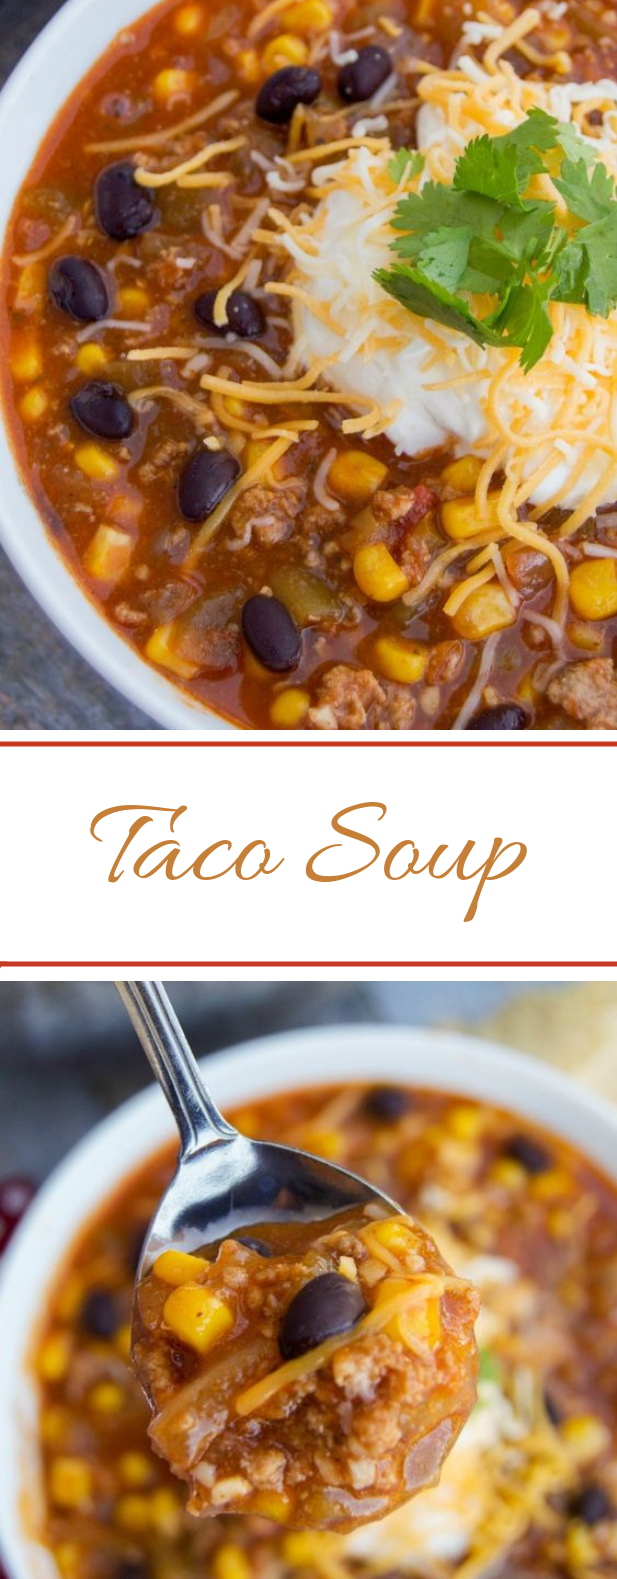 Taco Soup #winter #soup